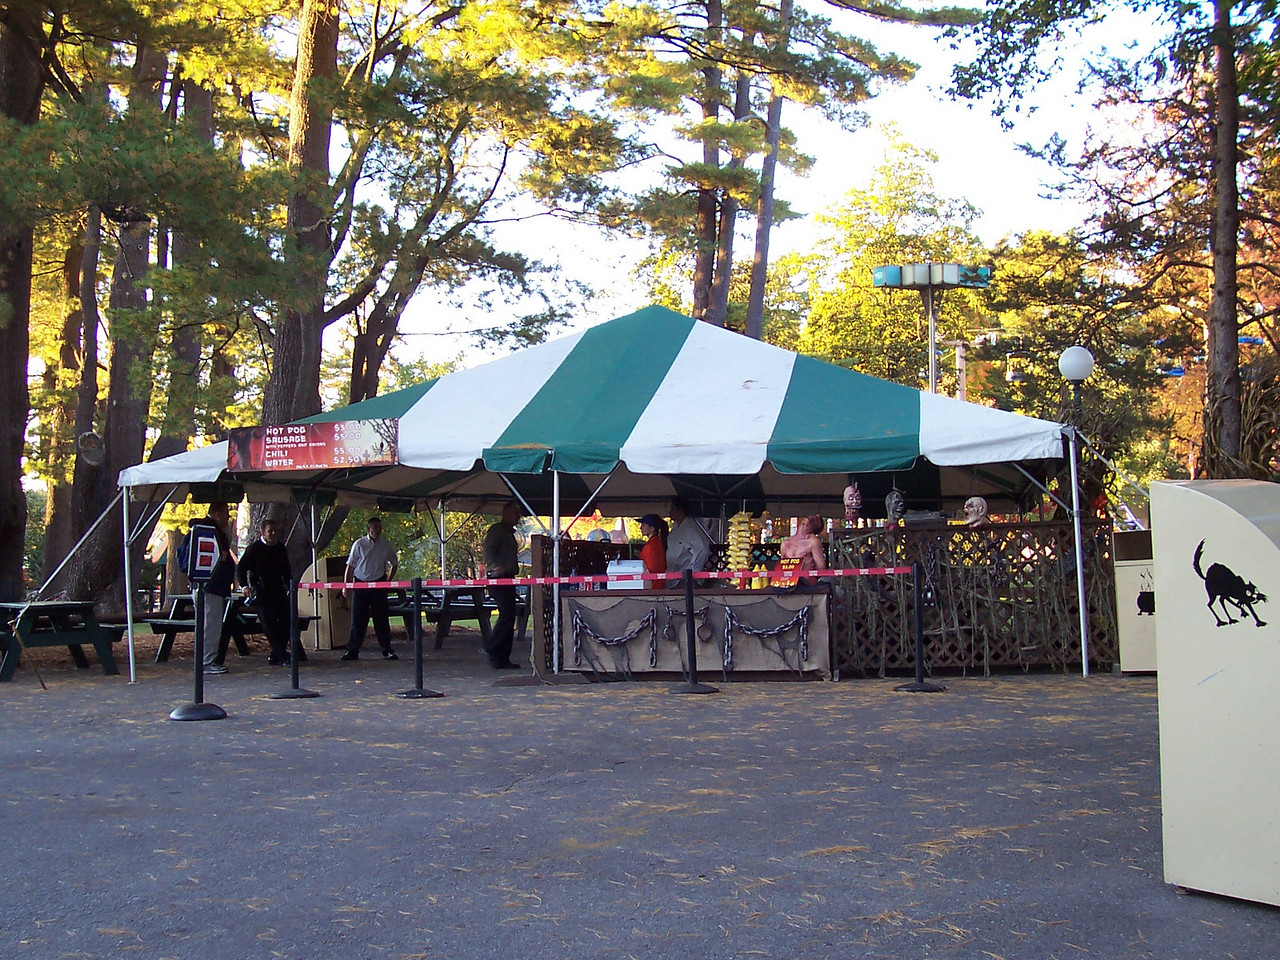 A new food concession stand. It served hot dogs, sausages, and chili.